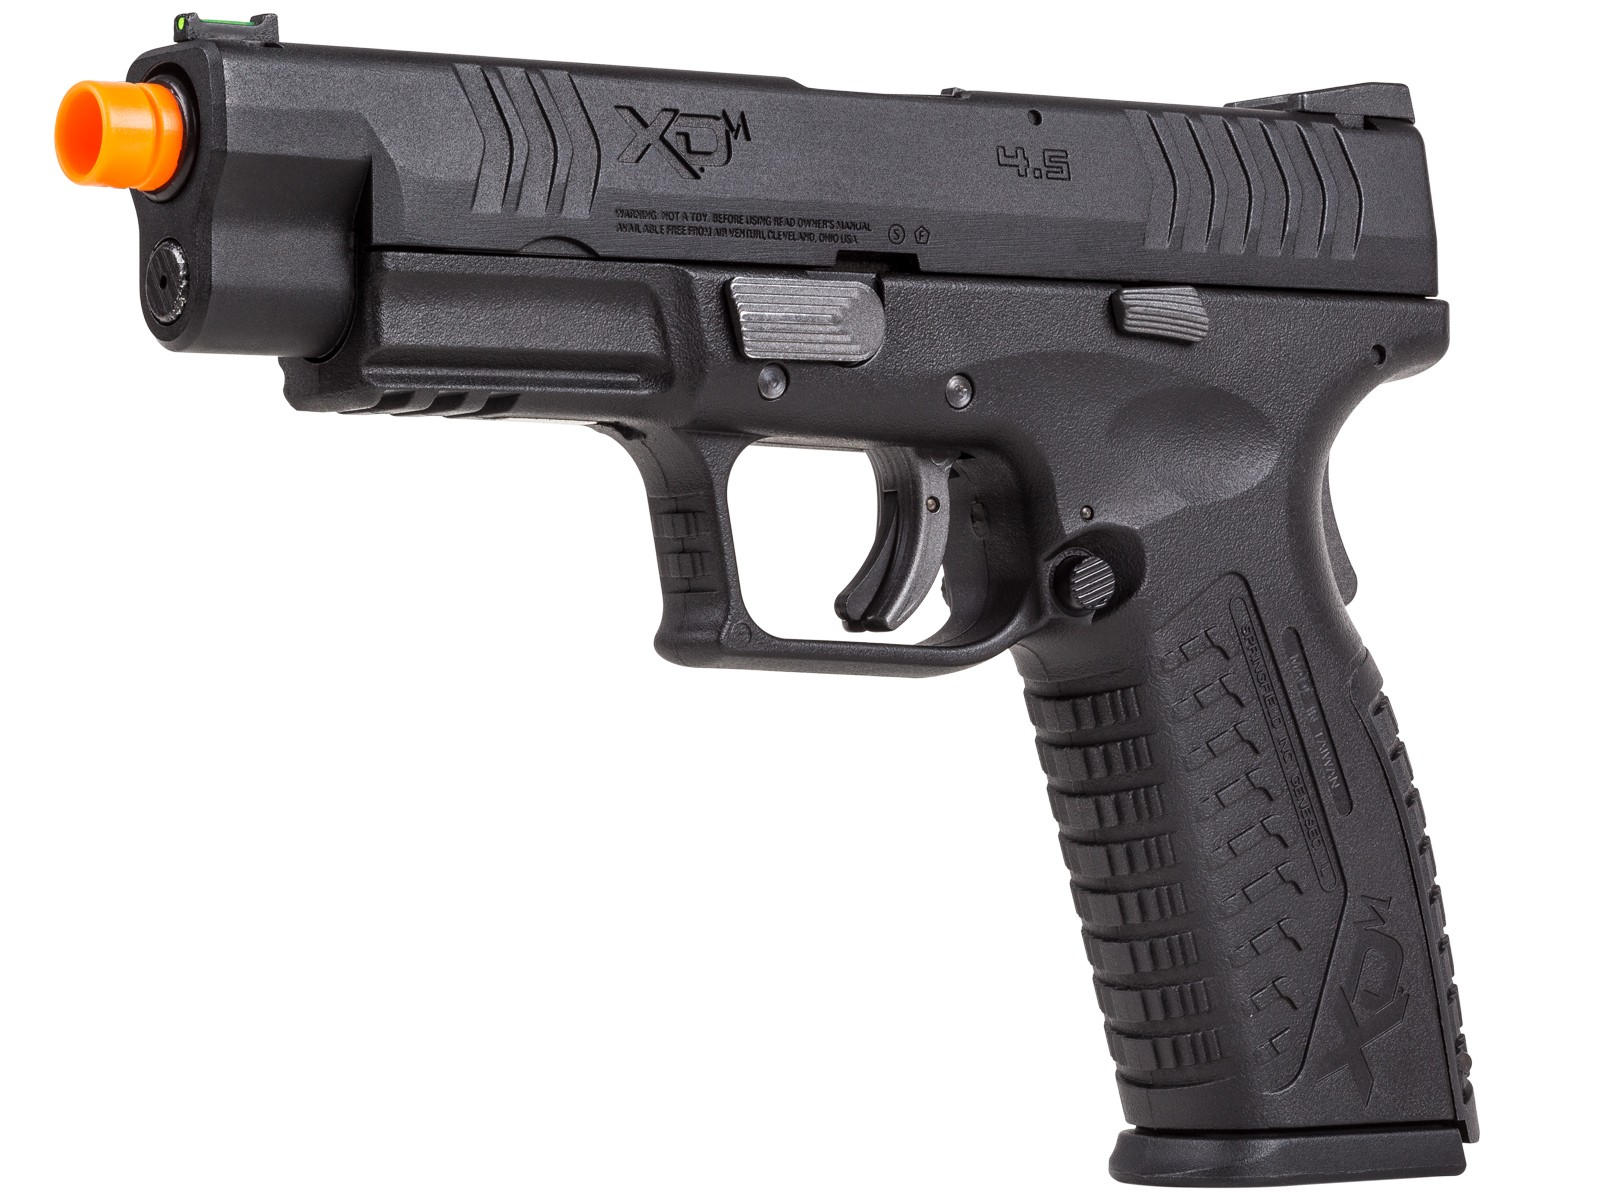 Springfield_Armory_XDM_45_GBB_Airsoft_Pistol_Black_6mm